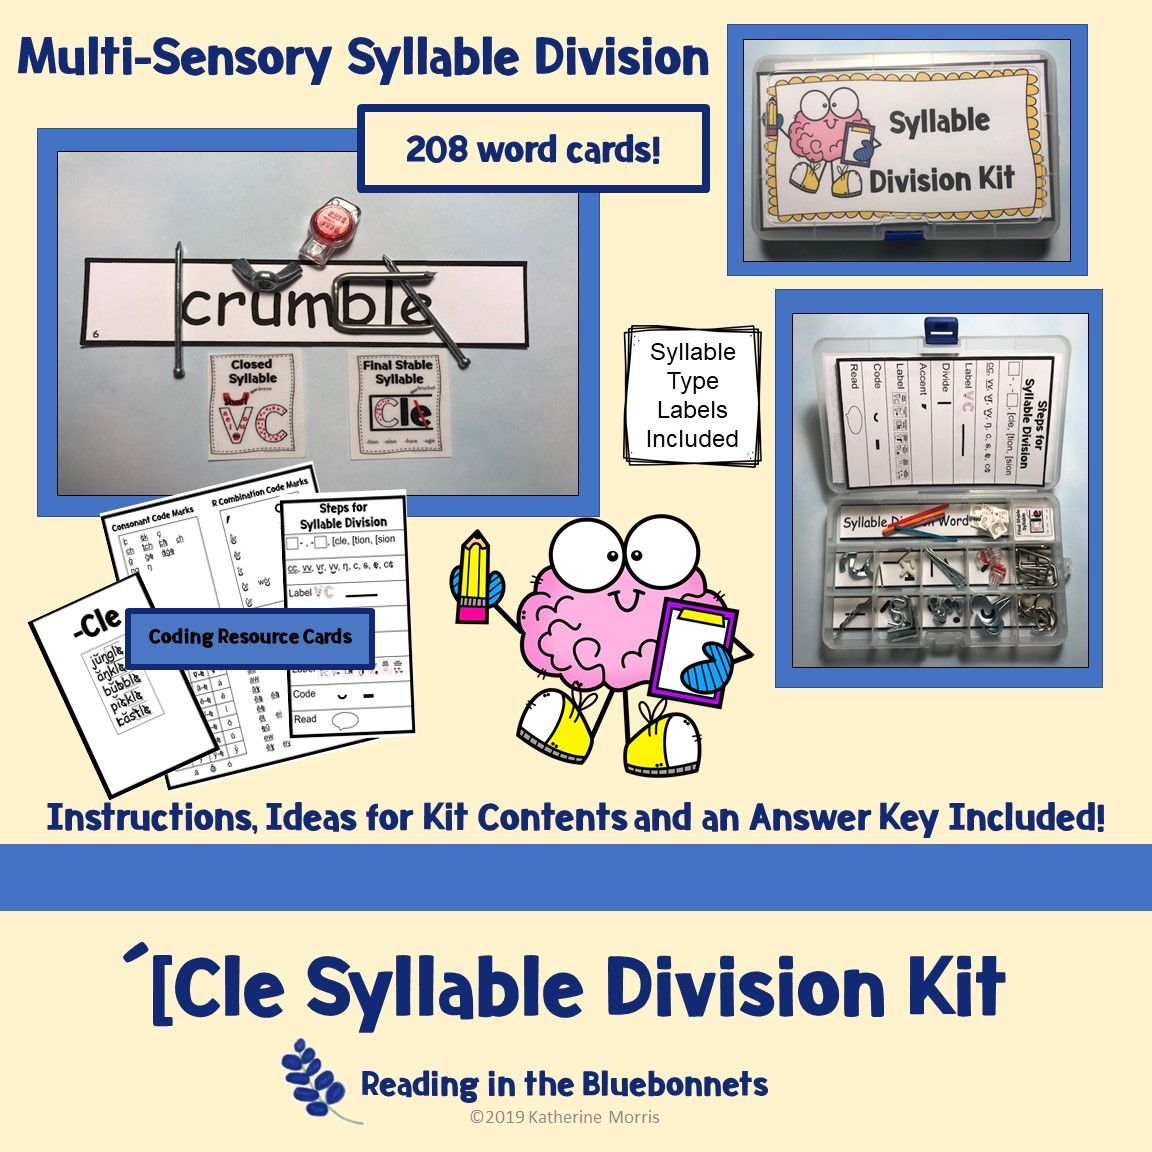 Cle Syllable Division Kit